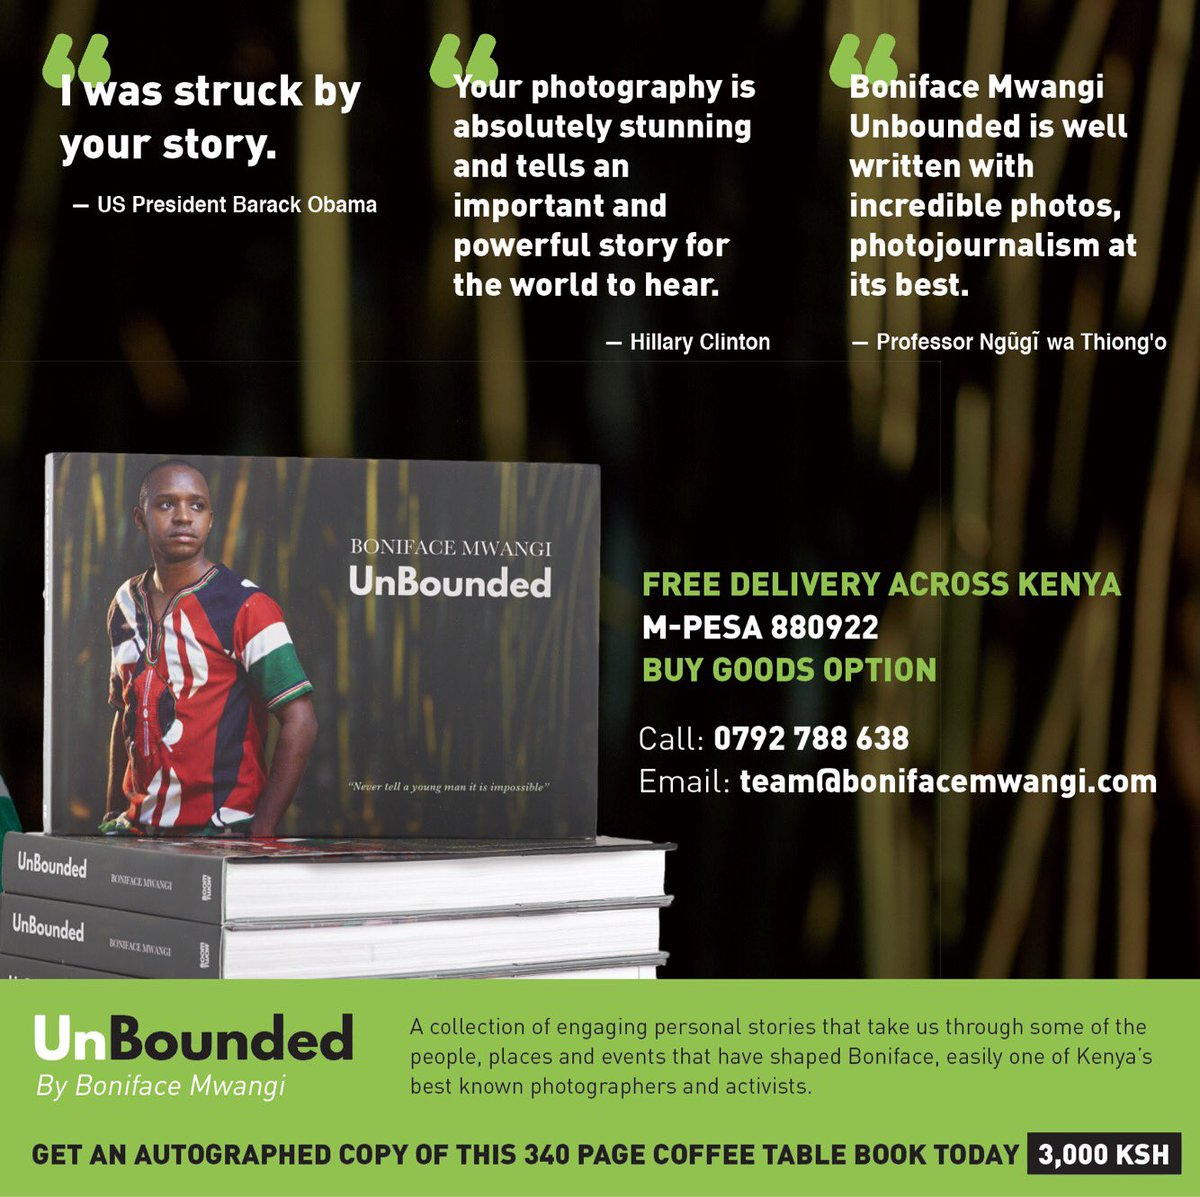 """Boniface Mwangi Unbounded is well written with incredible photos, photojournalism at its best."" - Professor Ngũgĩ wa Thiong'o #BMUnBounded"